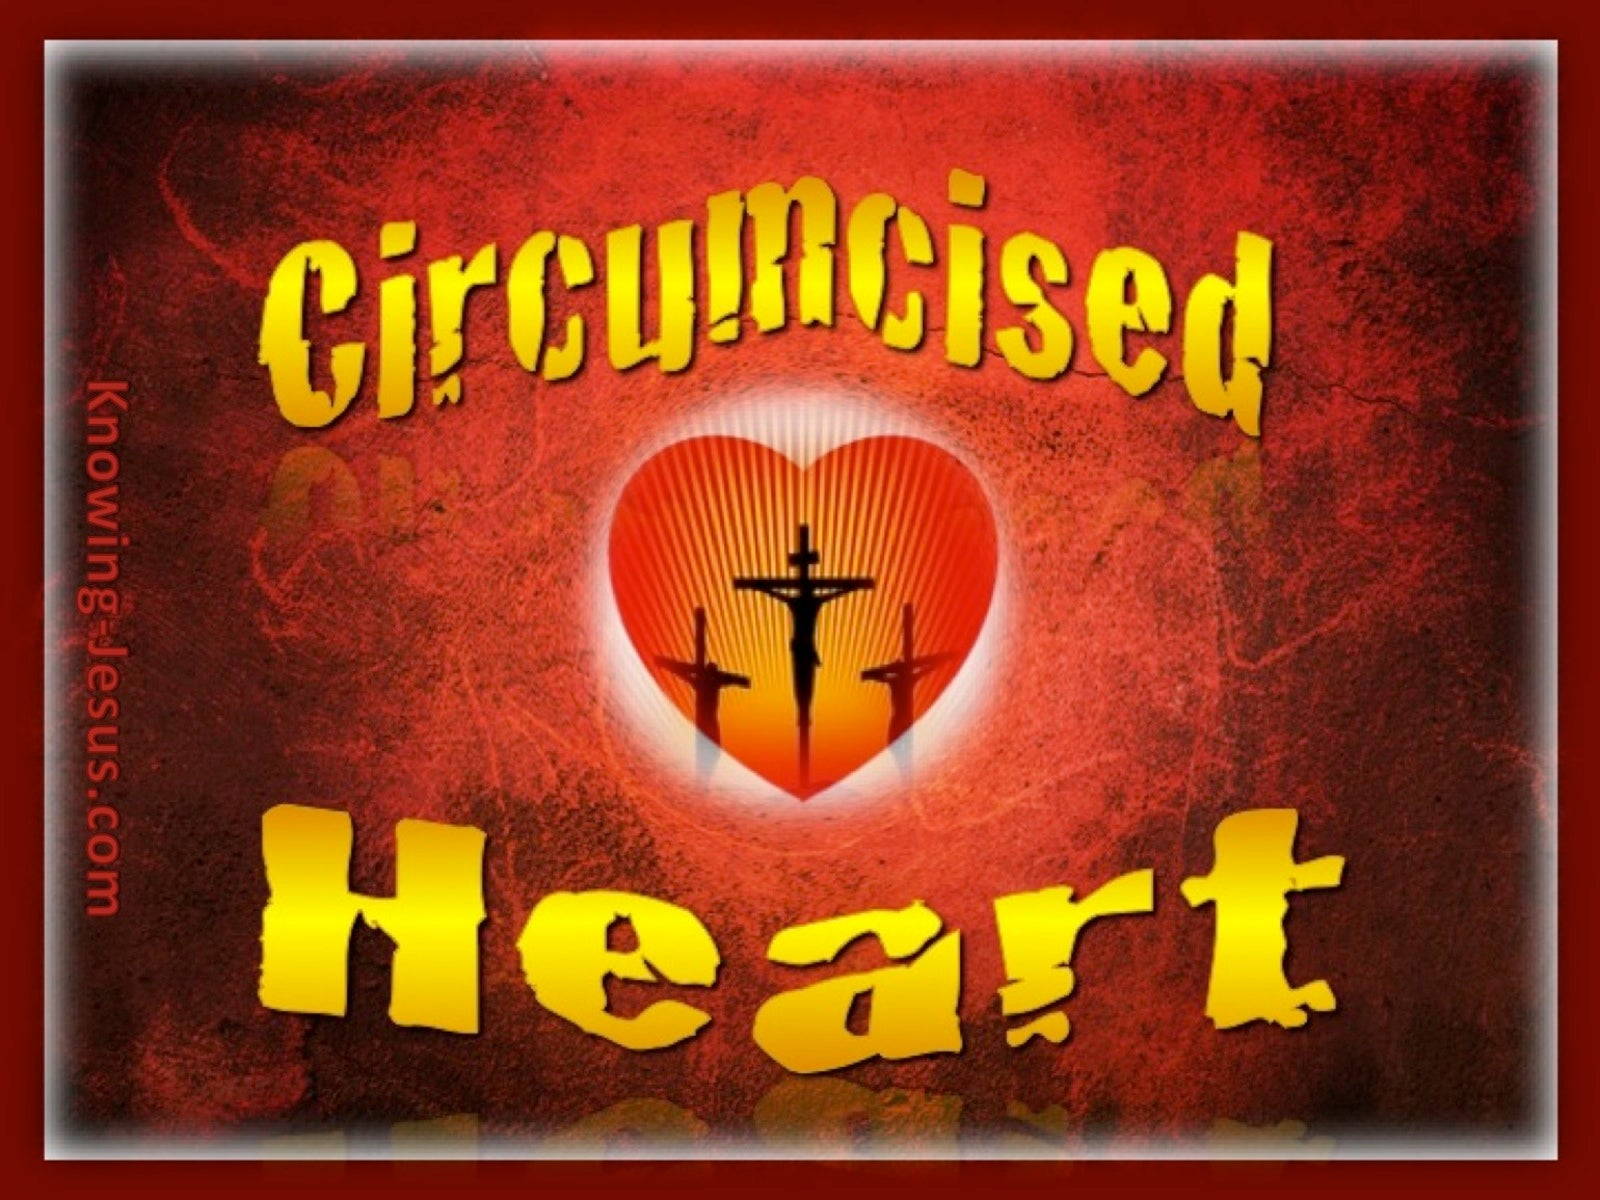 Colossians 2:11 Circumcised Heart (gold)